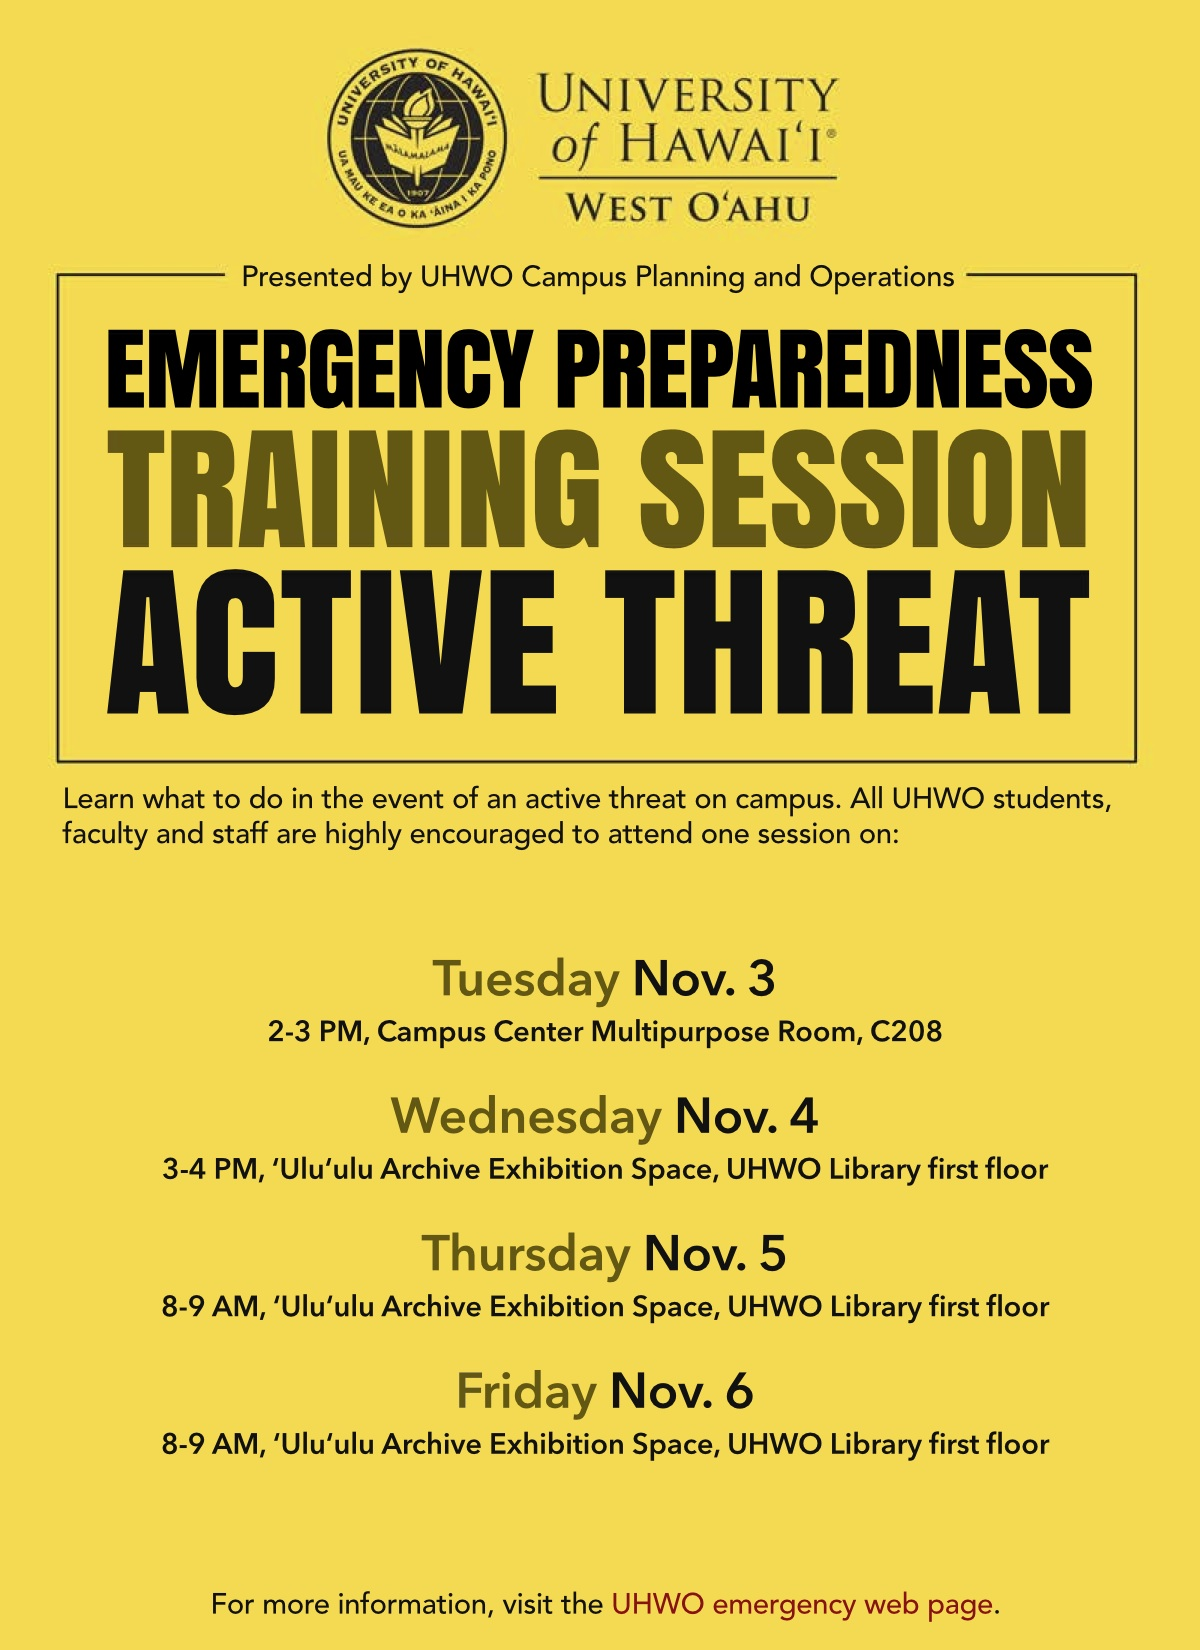 Active Threat Training Flyer